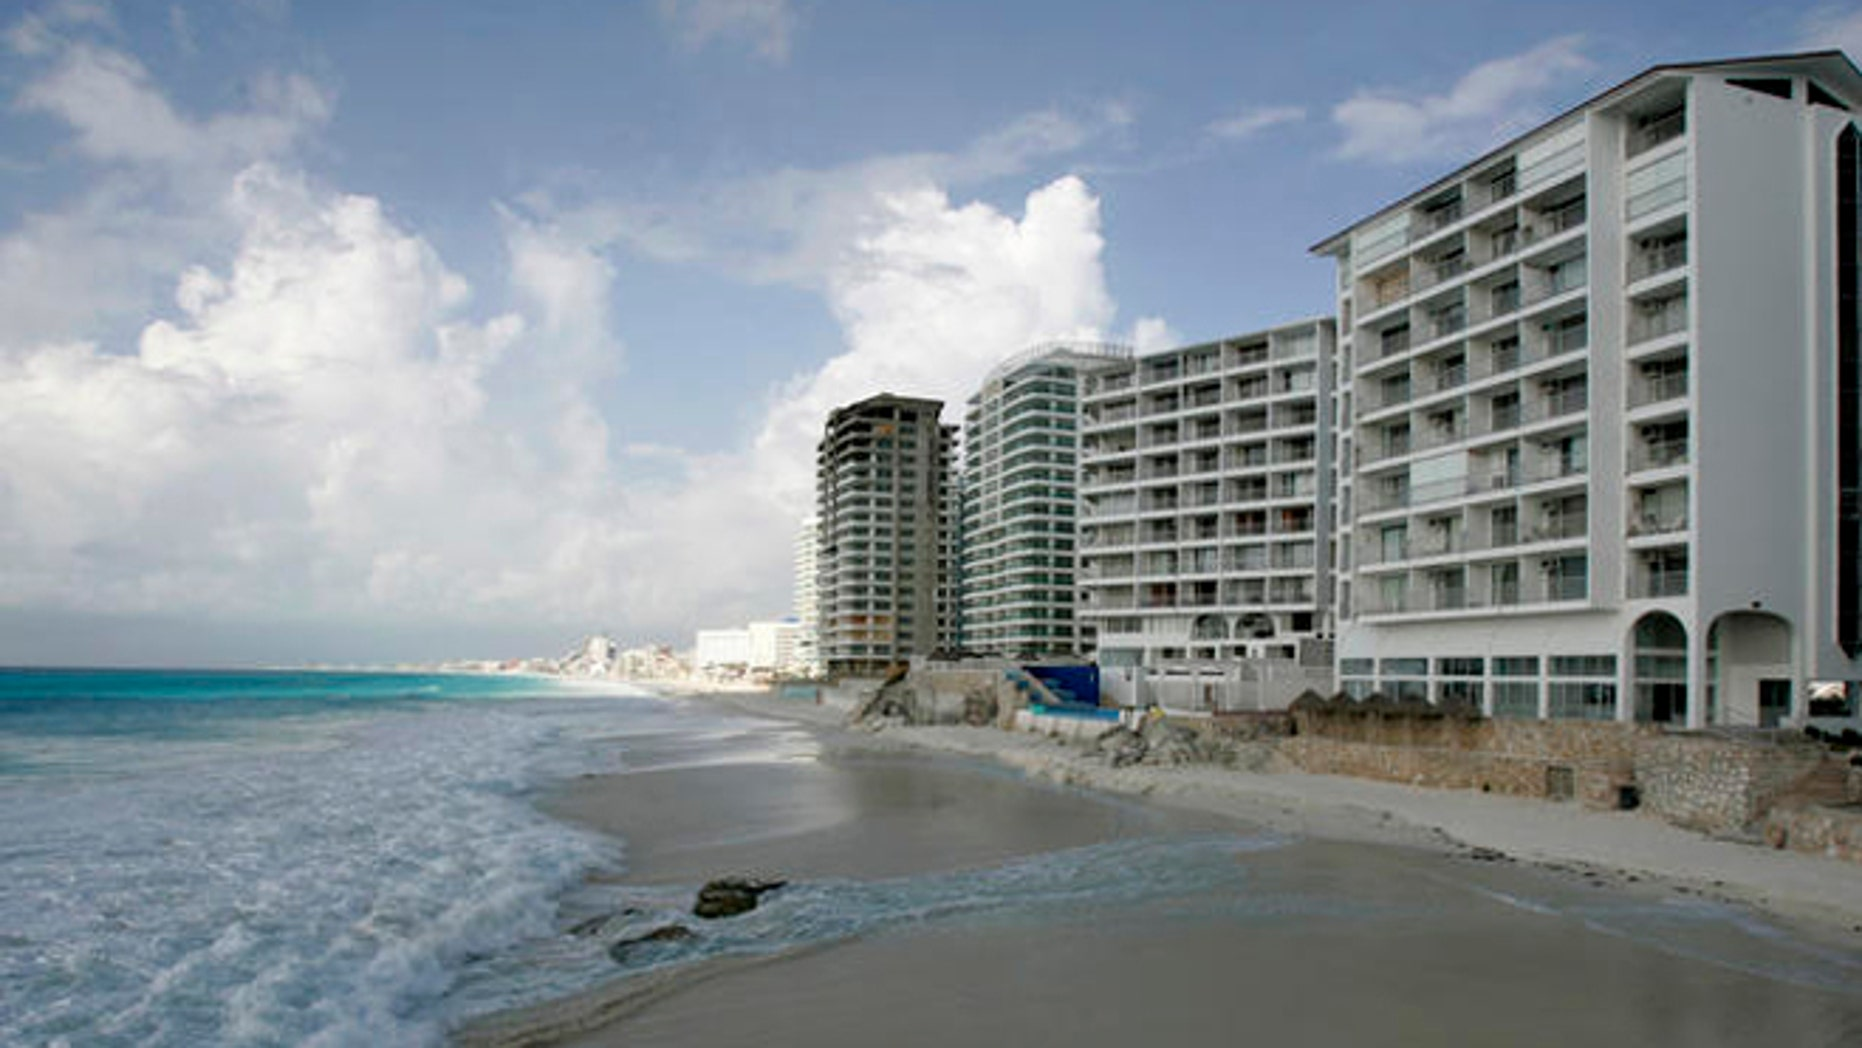 A view of an empty beach before the arrival of Hurricane Dean to the area in Cancun, southeastern Mexico, Monday, Aug. 20, 2007. Hurricane Dean spared the Cayman Islands the worst of its fury on Monday as it headed for a collision course with Mexico's resort-dotted Caribbean coast. (AP Photo/ Eduardo Verdugo)